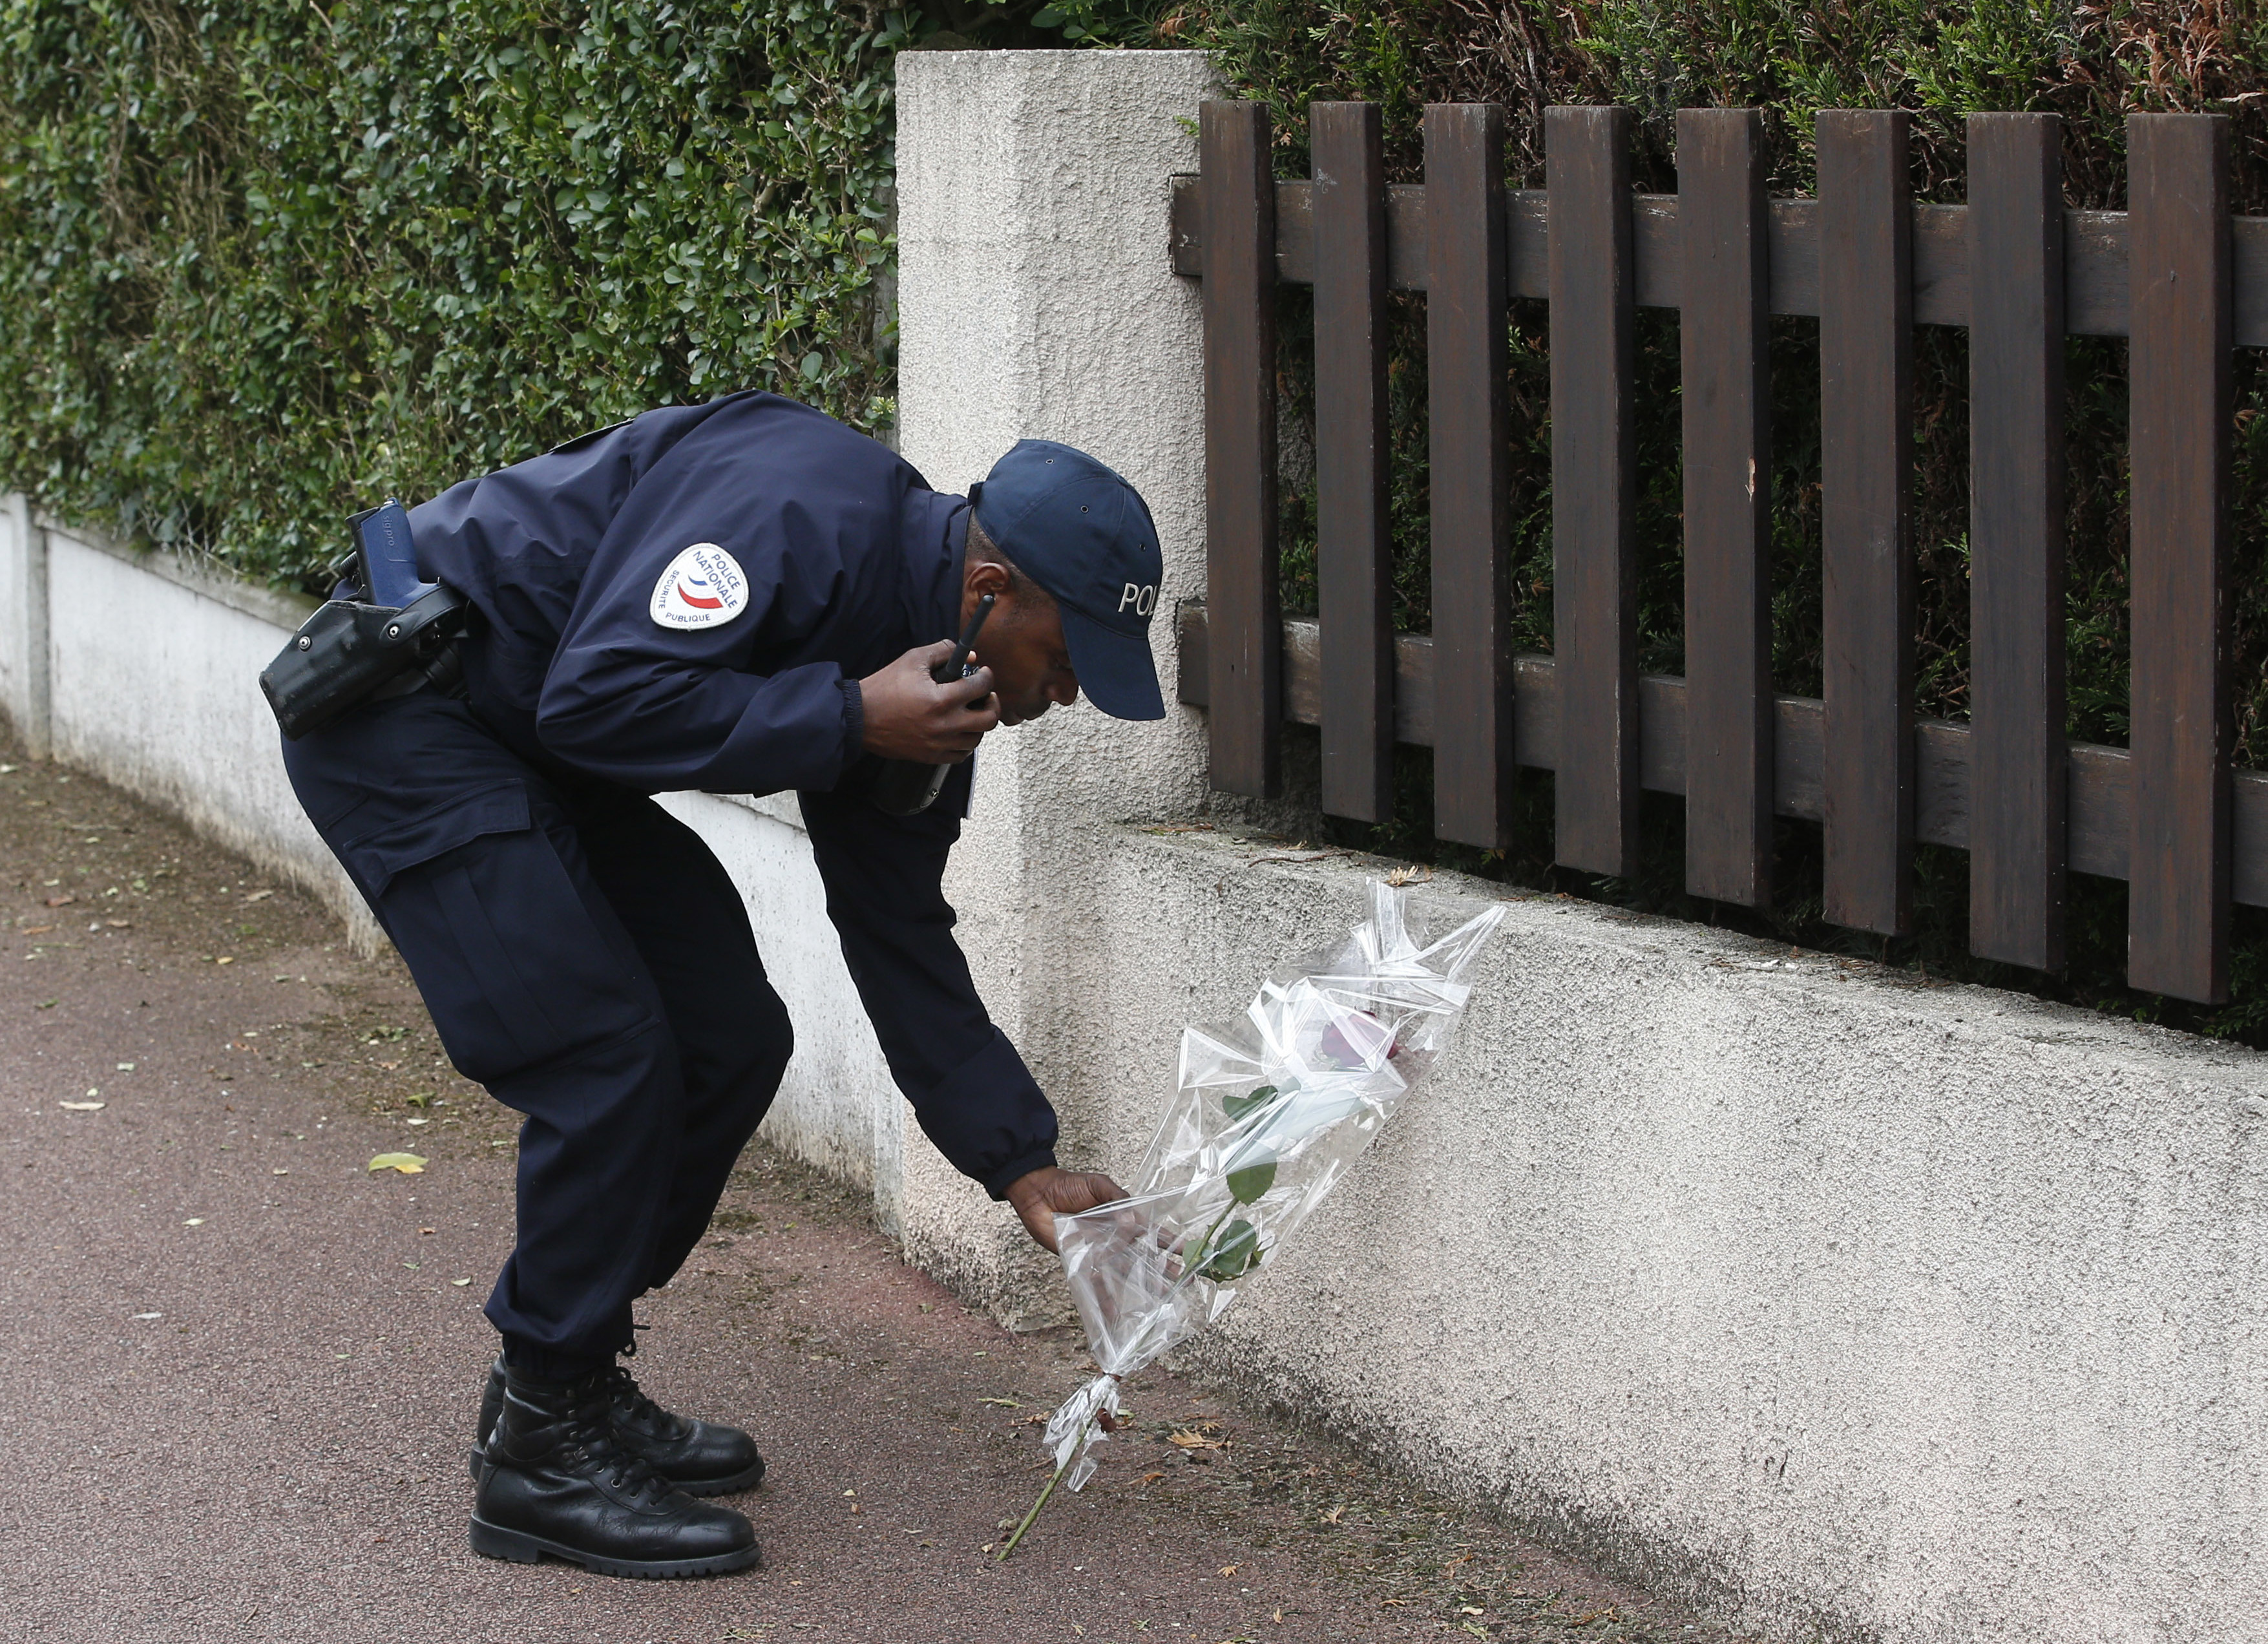 Stabbing Attack Kills French Police Officers At Home; Their Son Is Saved